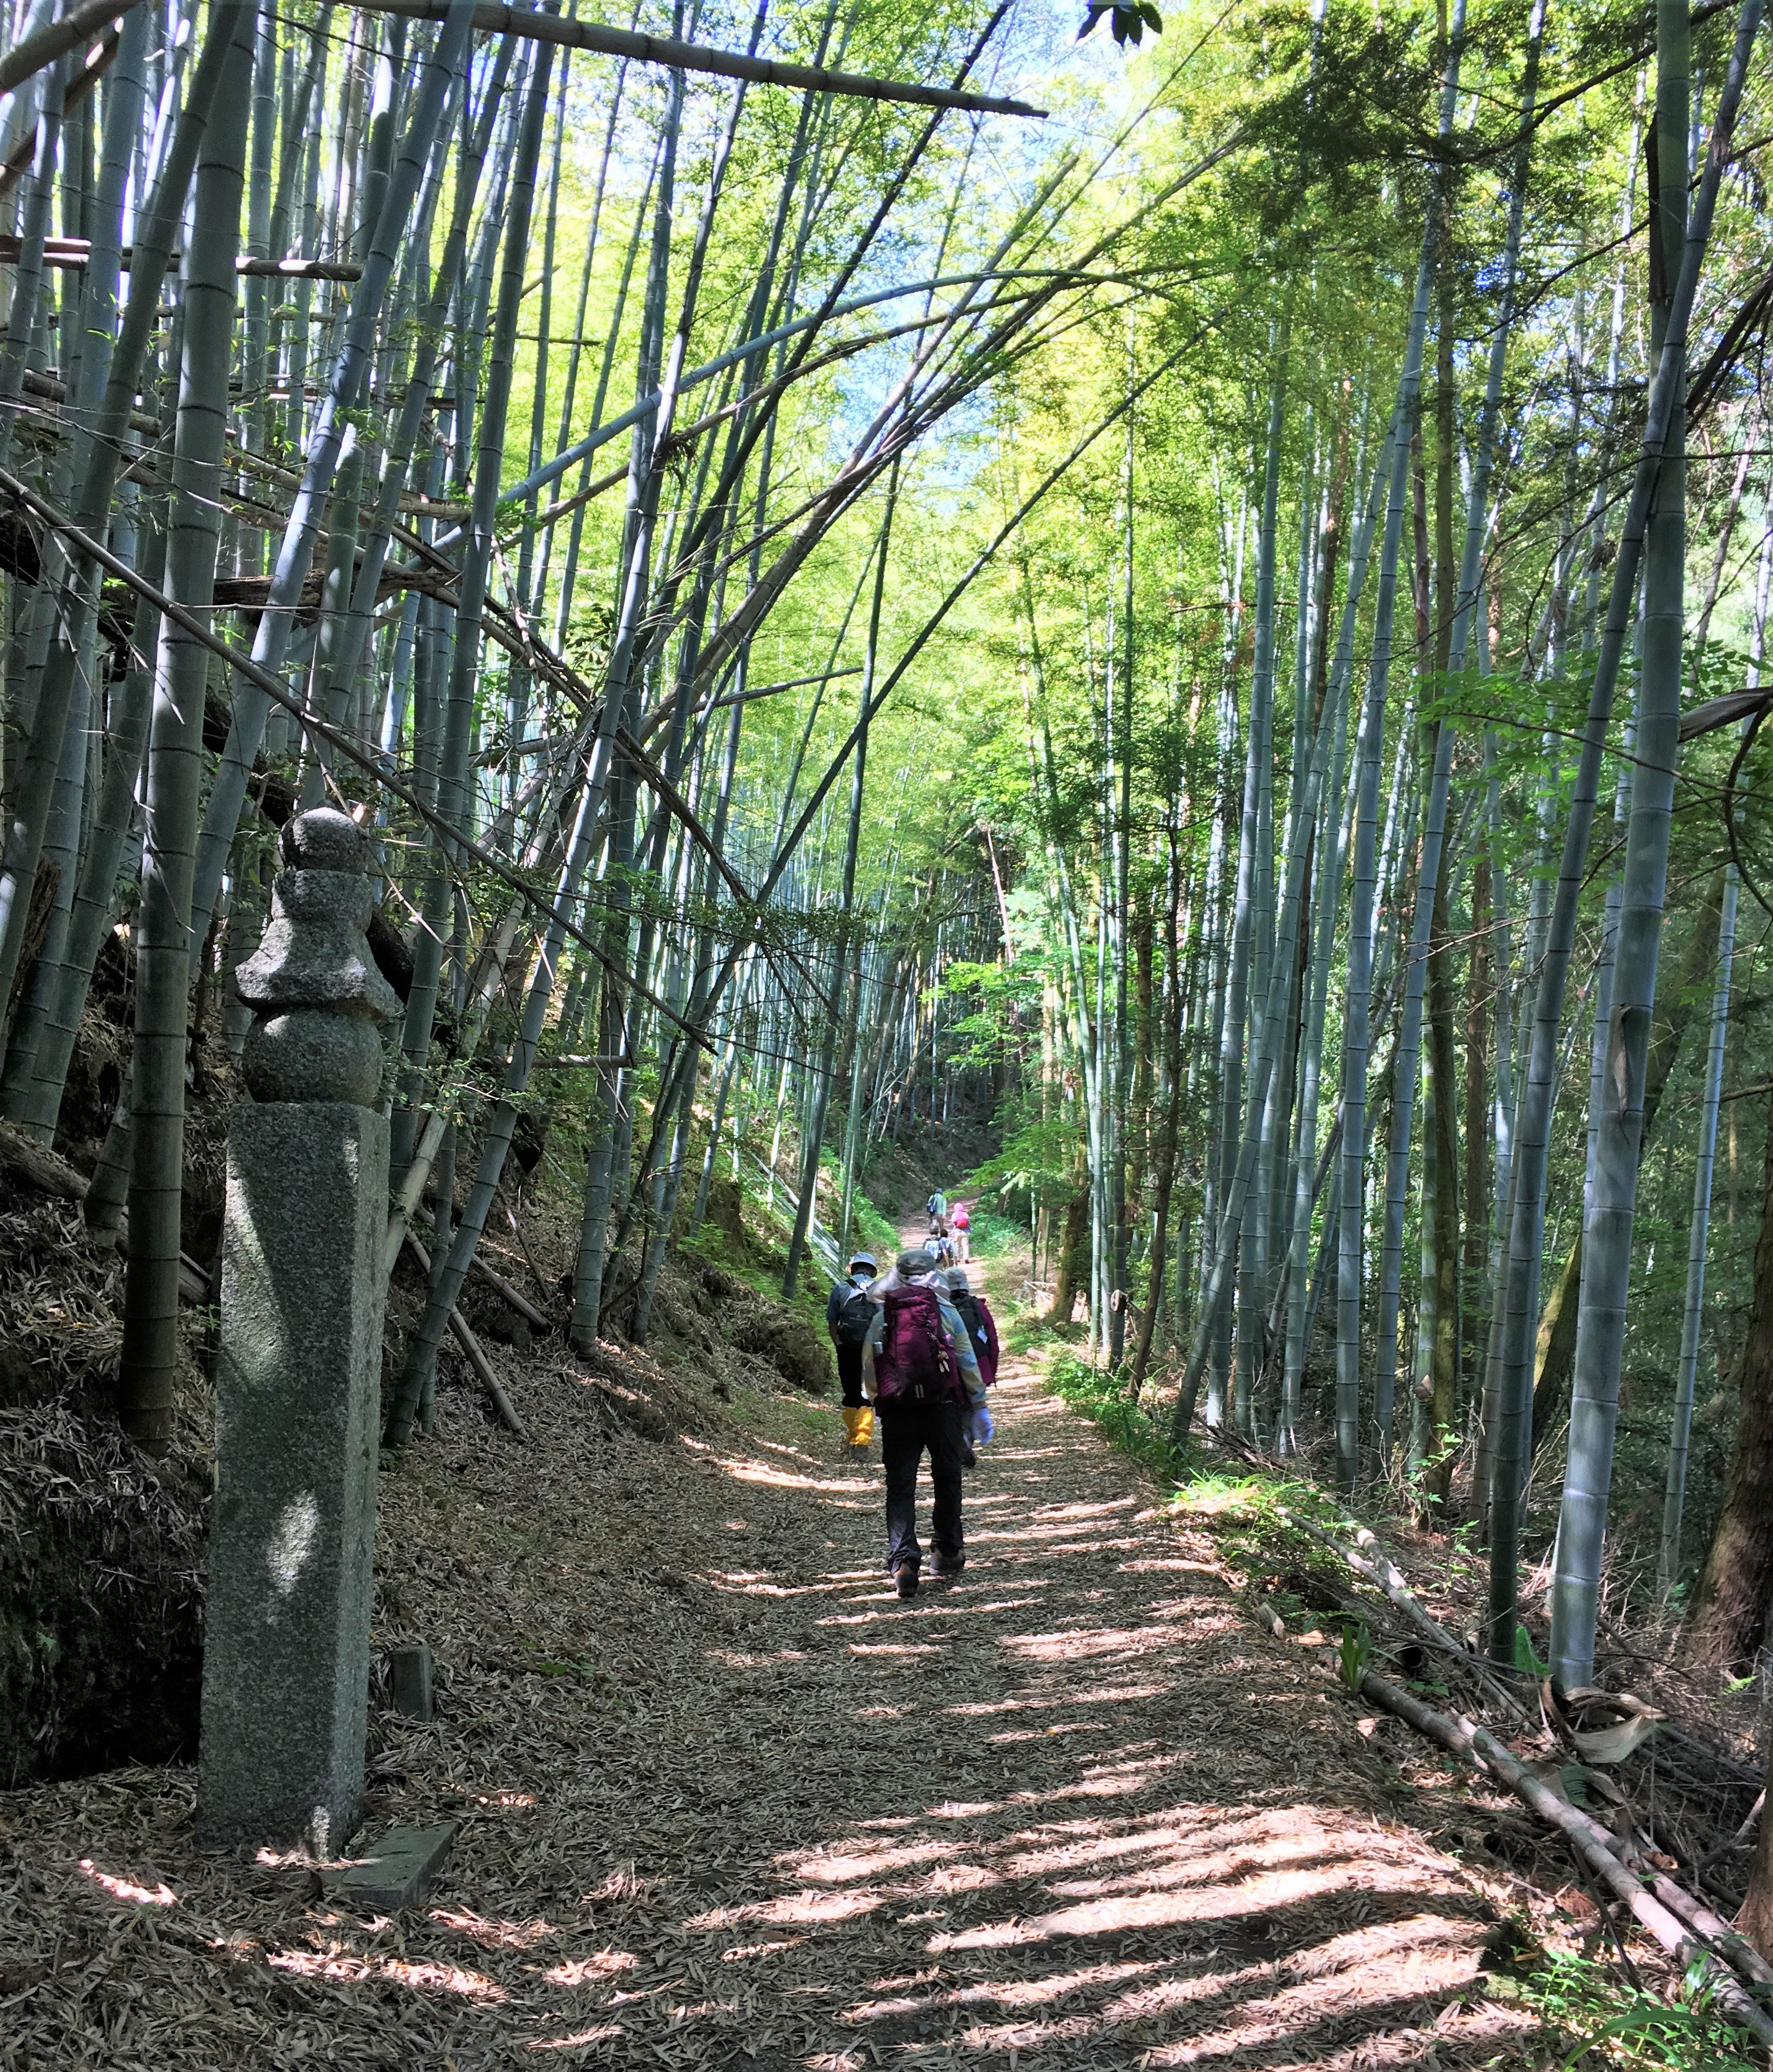 The Choishi Michi: The Sacred Pilgrimage to Koyasan